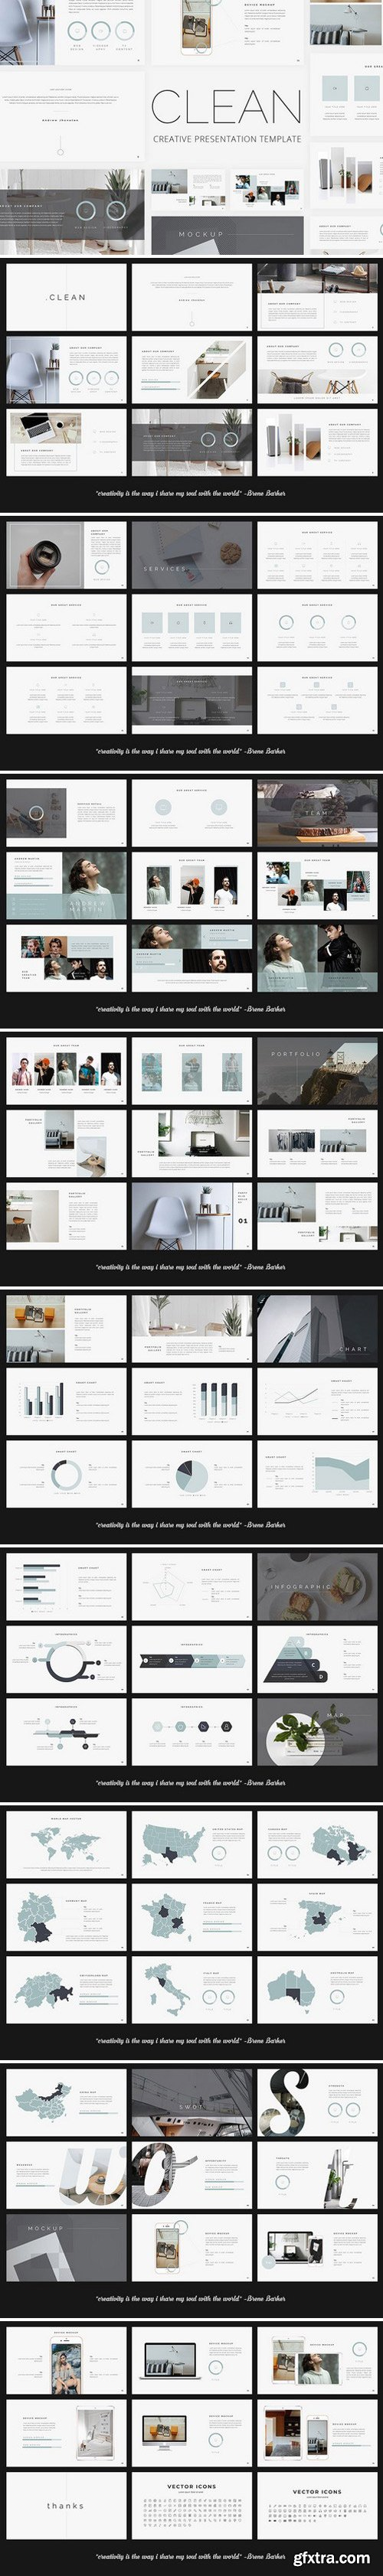 CM - Clean - Creative Google Slides 2458677